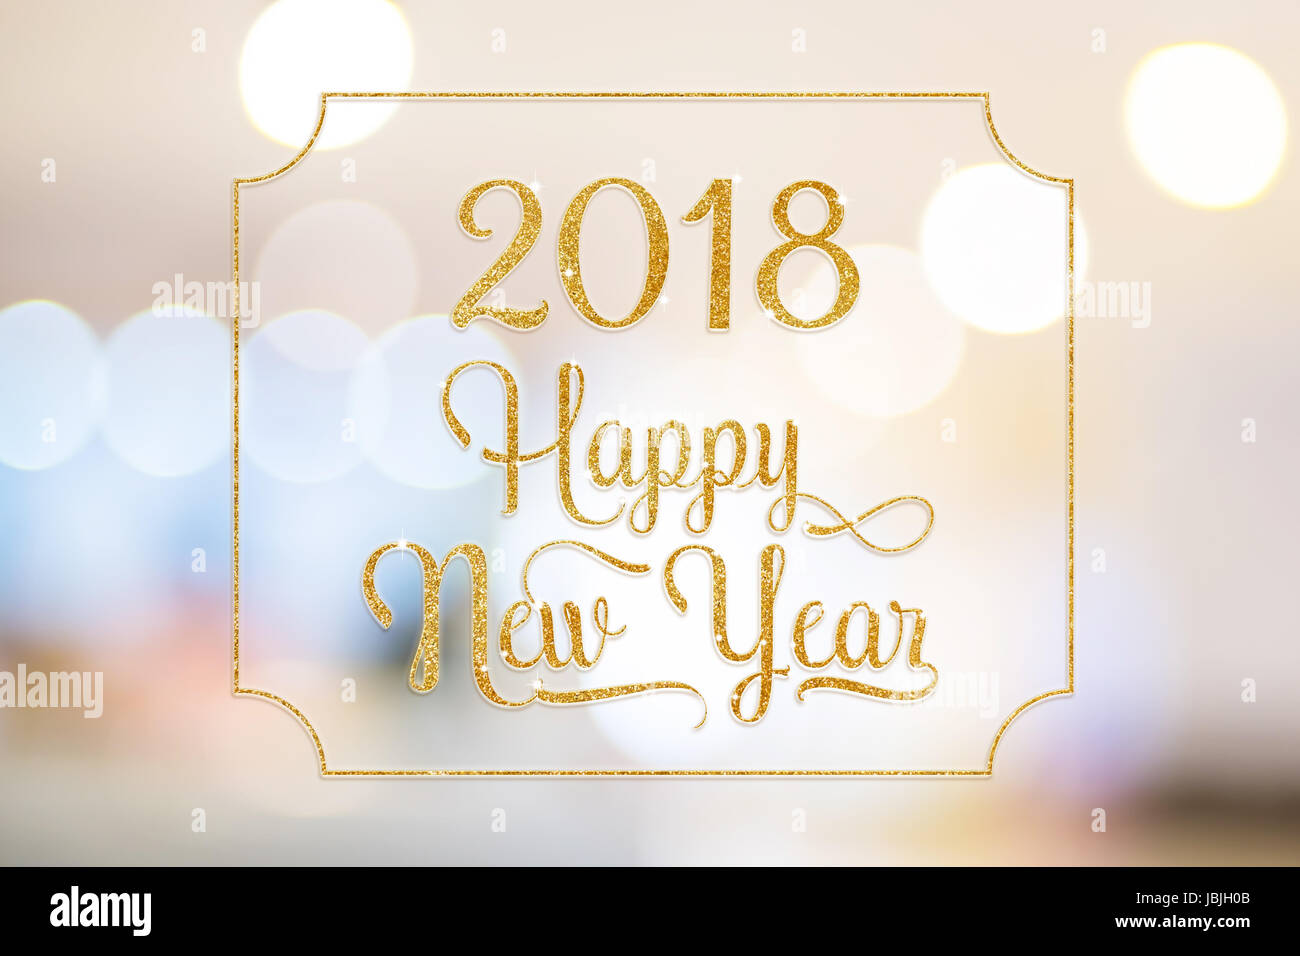 happy new year 2018 gold sparkling glitter word with golden frame at abstract blurred bokeh light background holiday concept